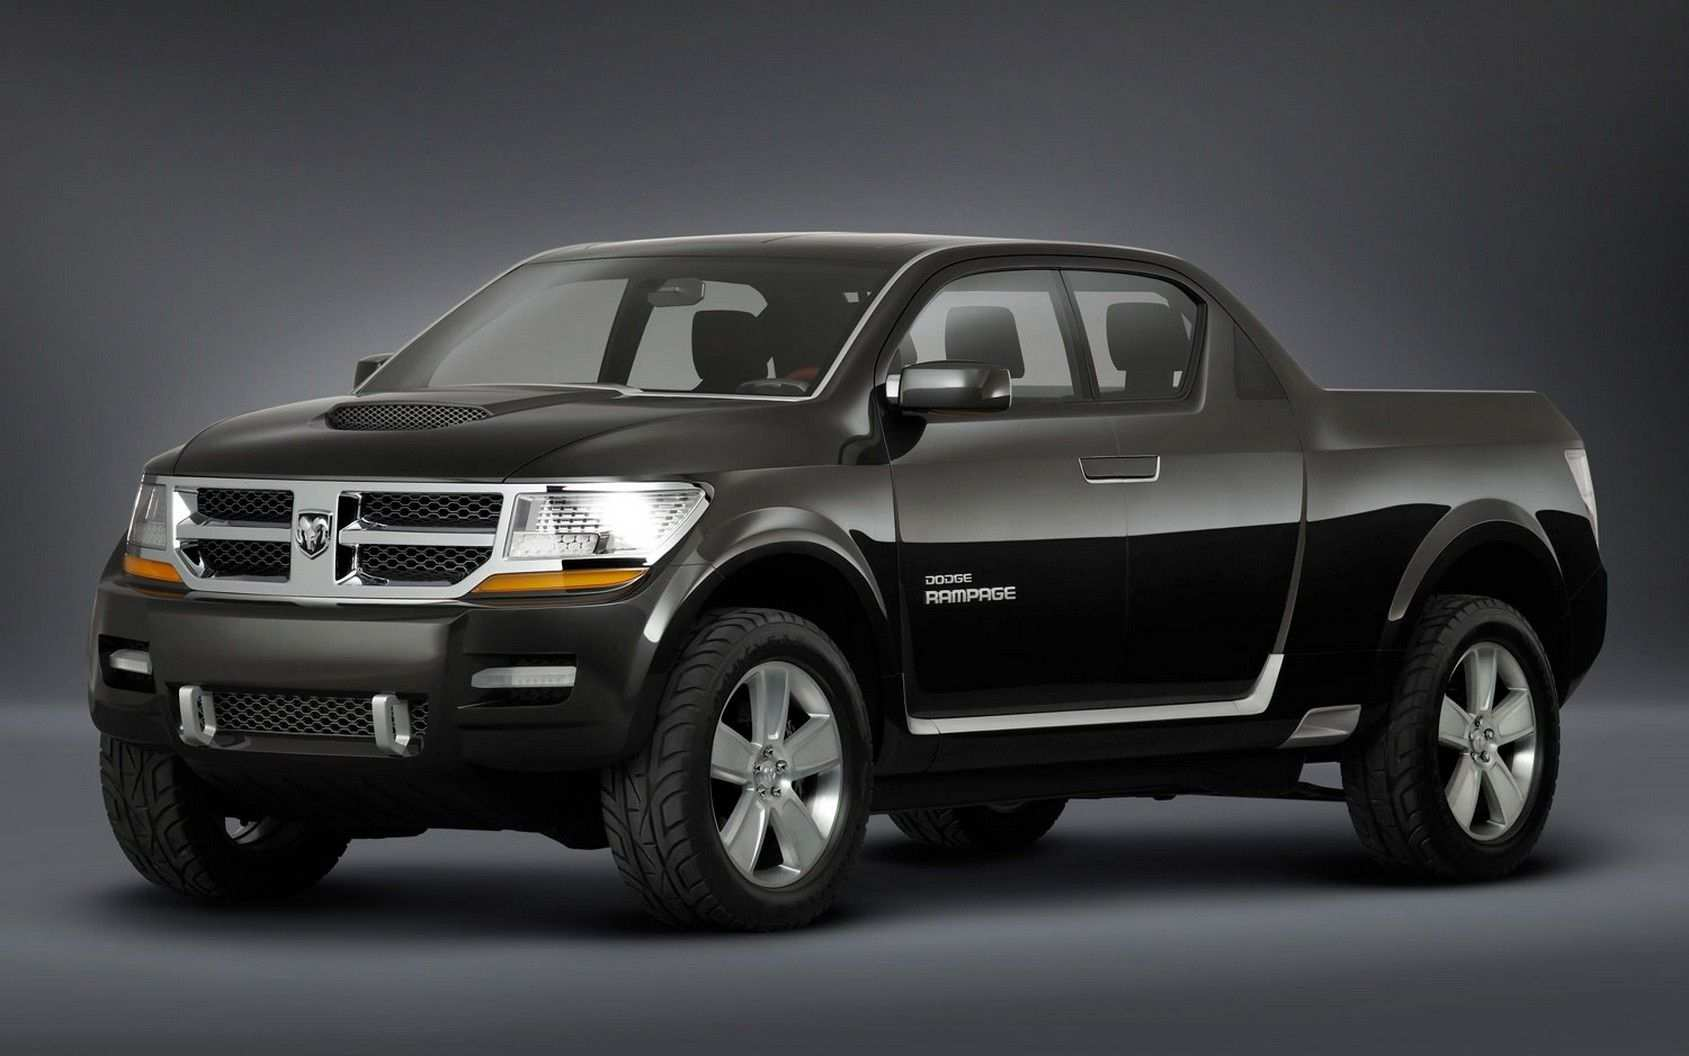 28 Great New Truck Dodge 2019 Release Date Price with New Truck Dodge 2019 Release Date